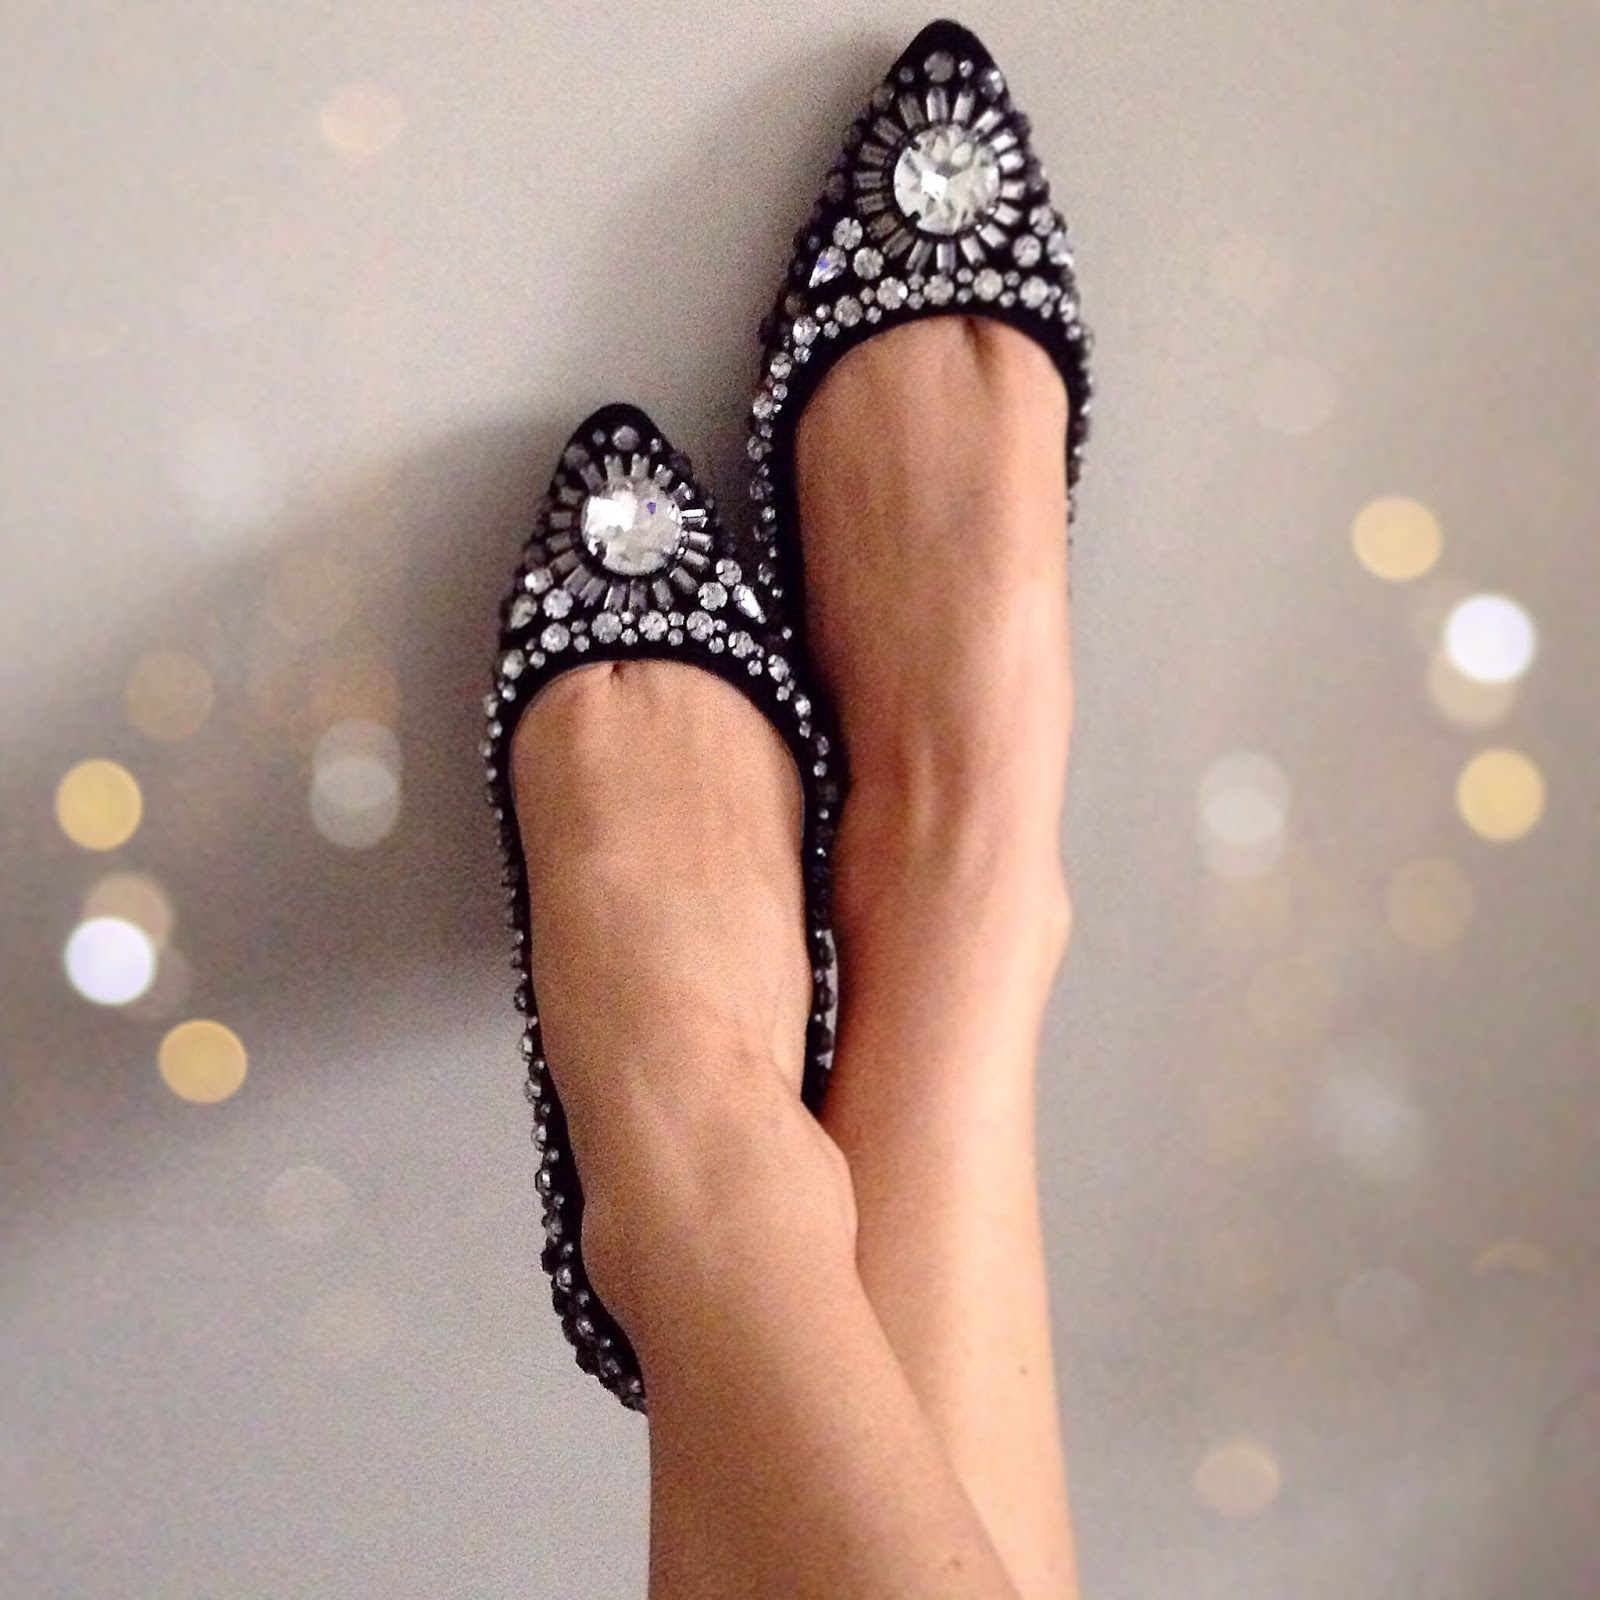 675f8eb4ad55 THE Boden jewelled flats that we ve all been waiting for are in store!